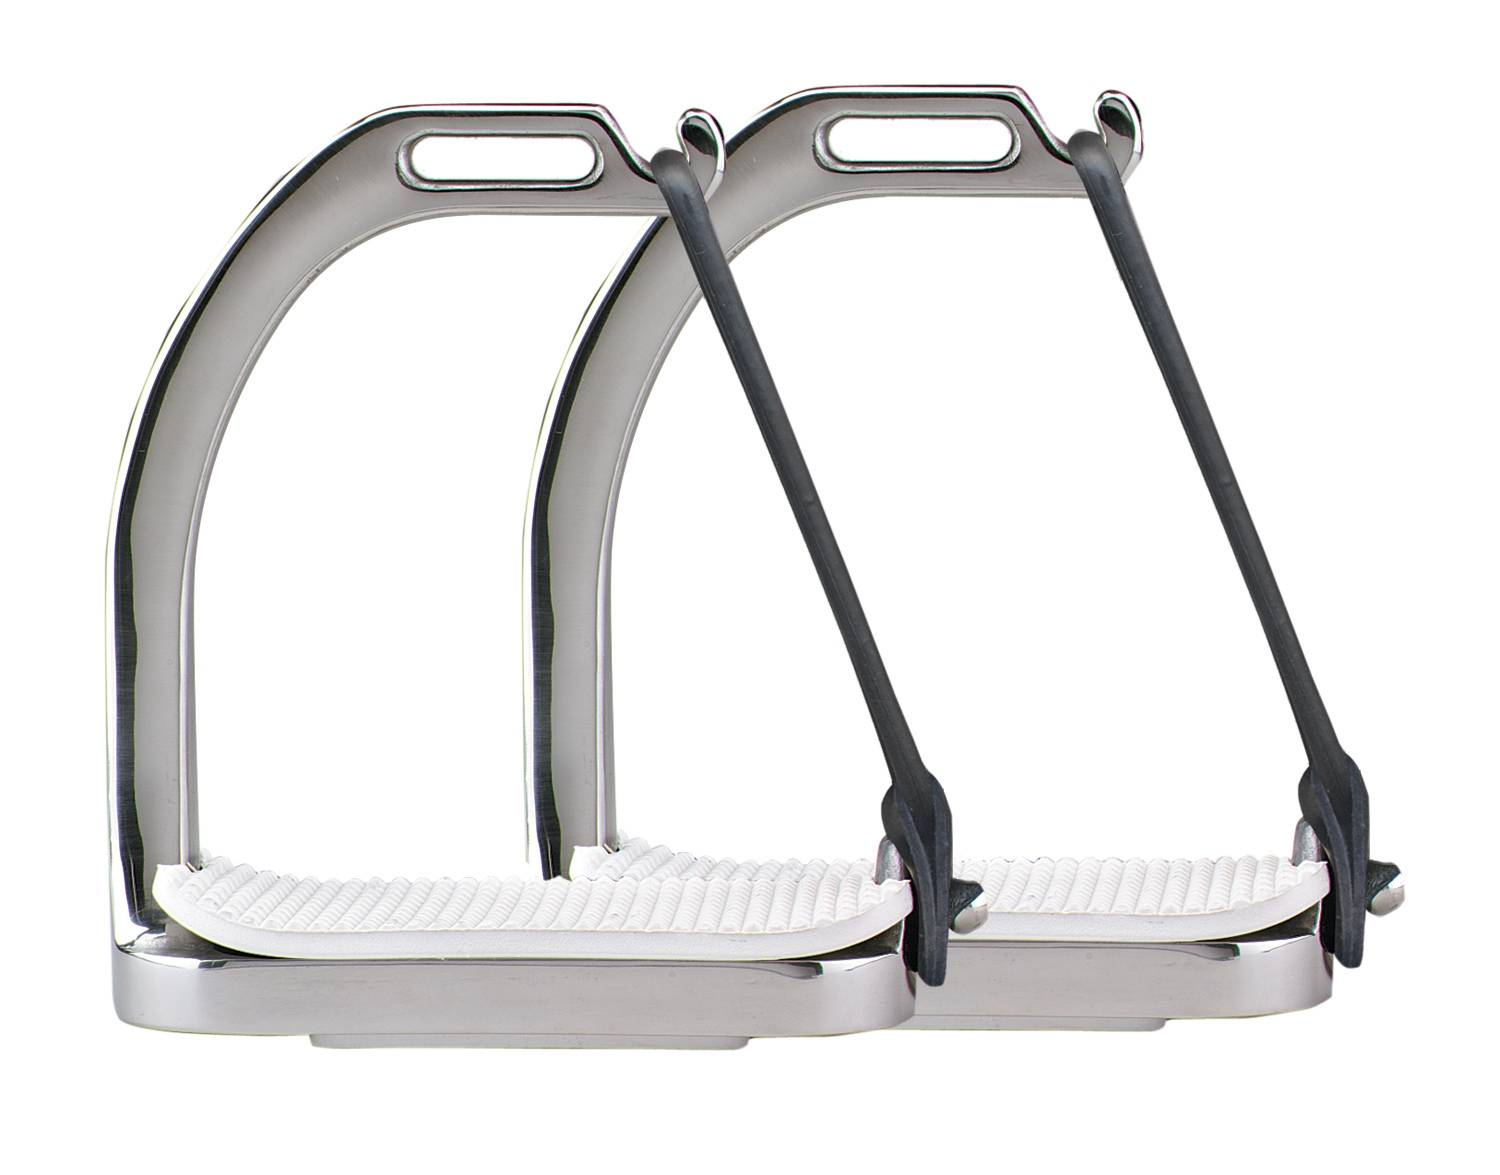 Perri's Stainless Stell Fillis Safety Stirrup Irons